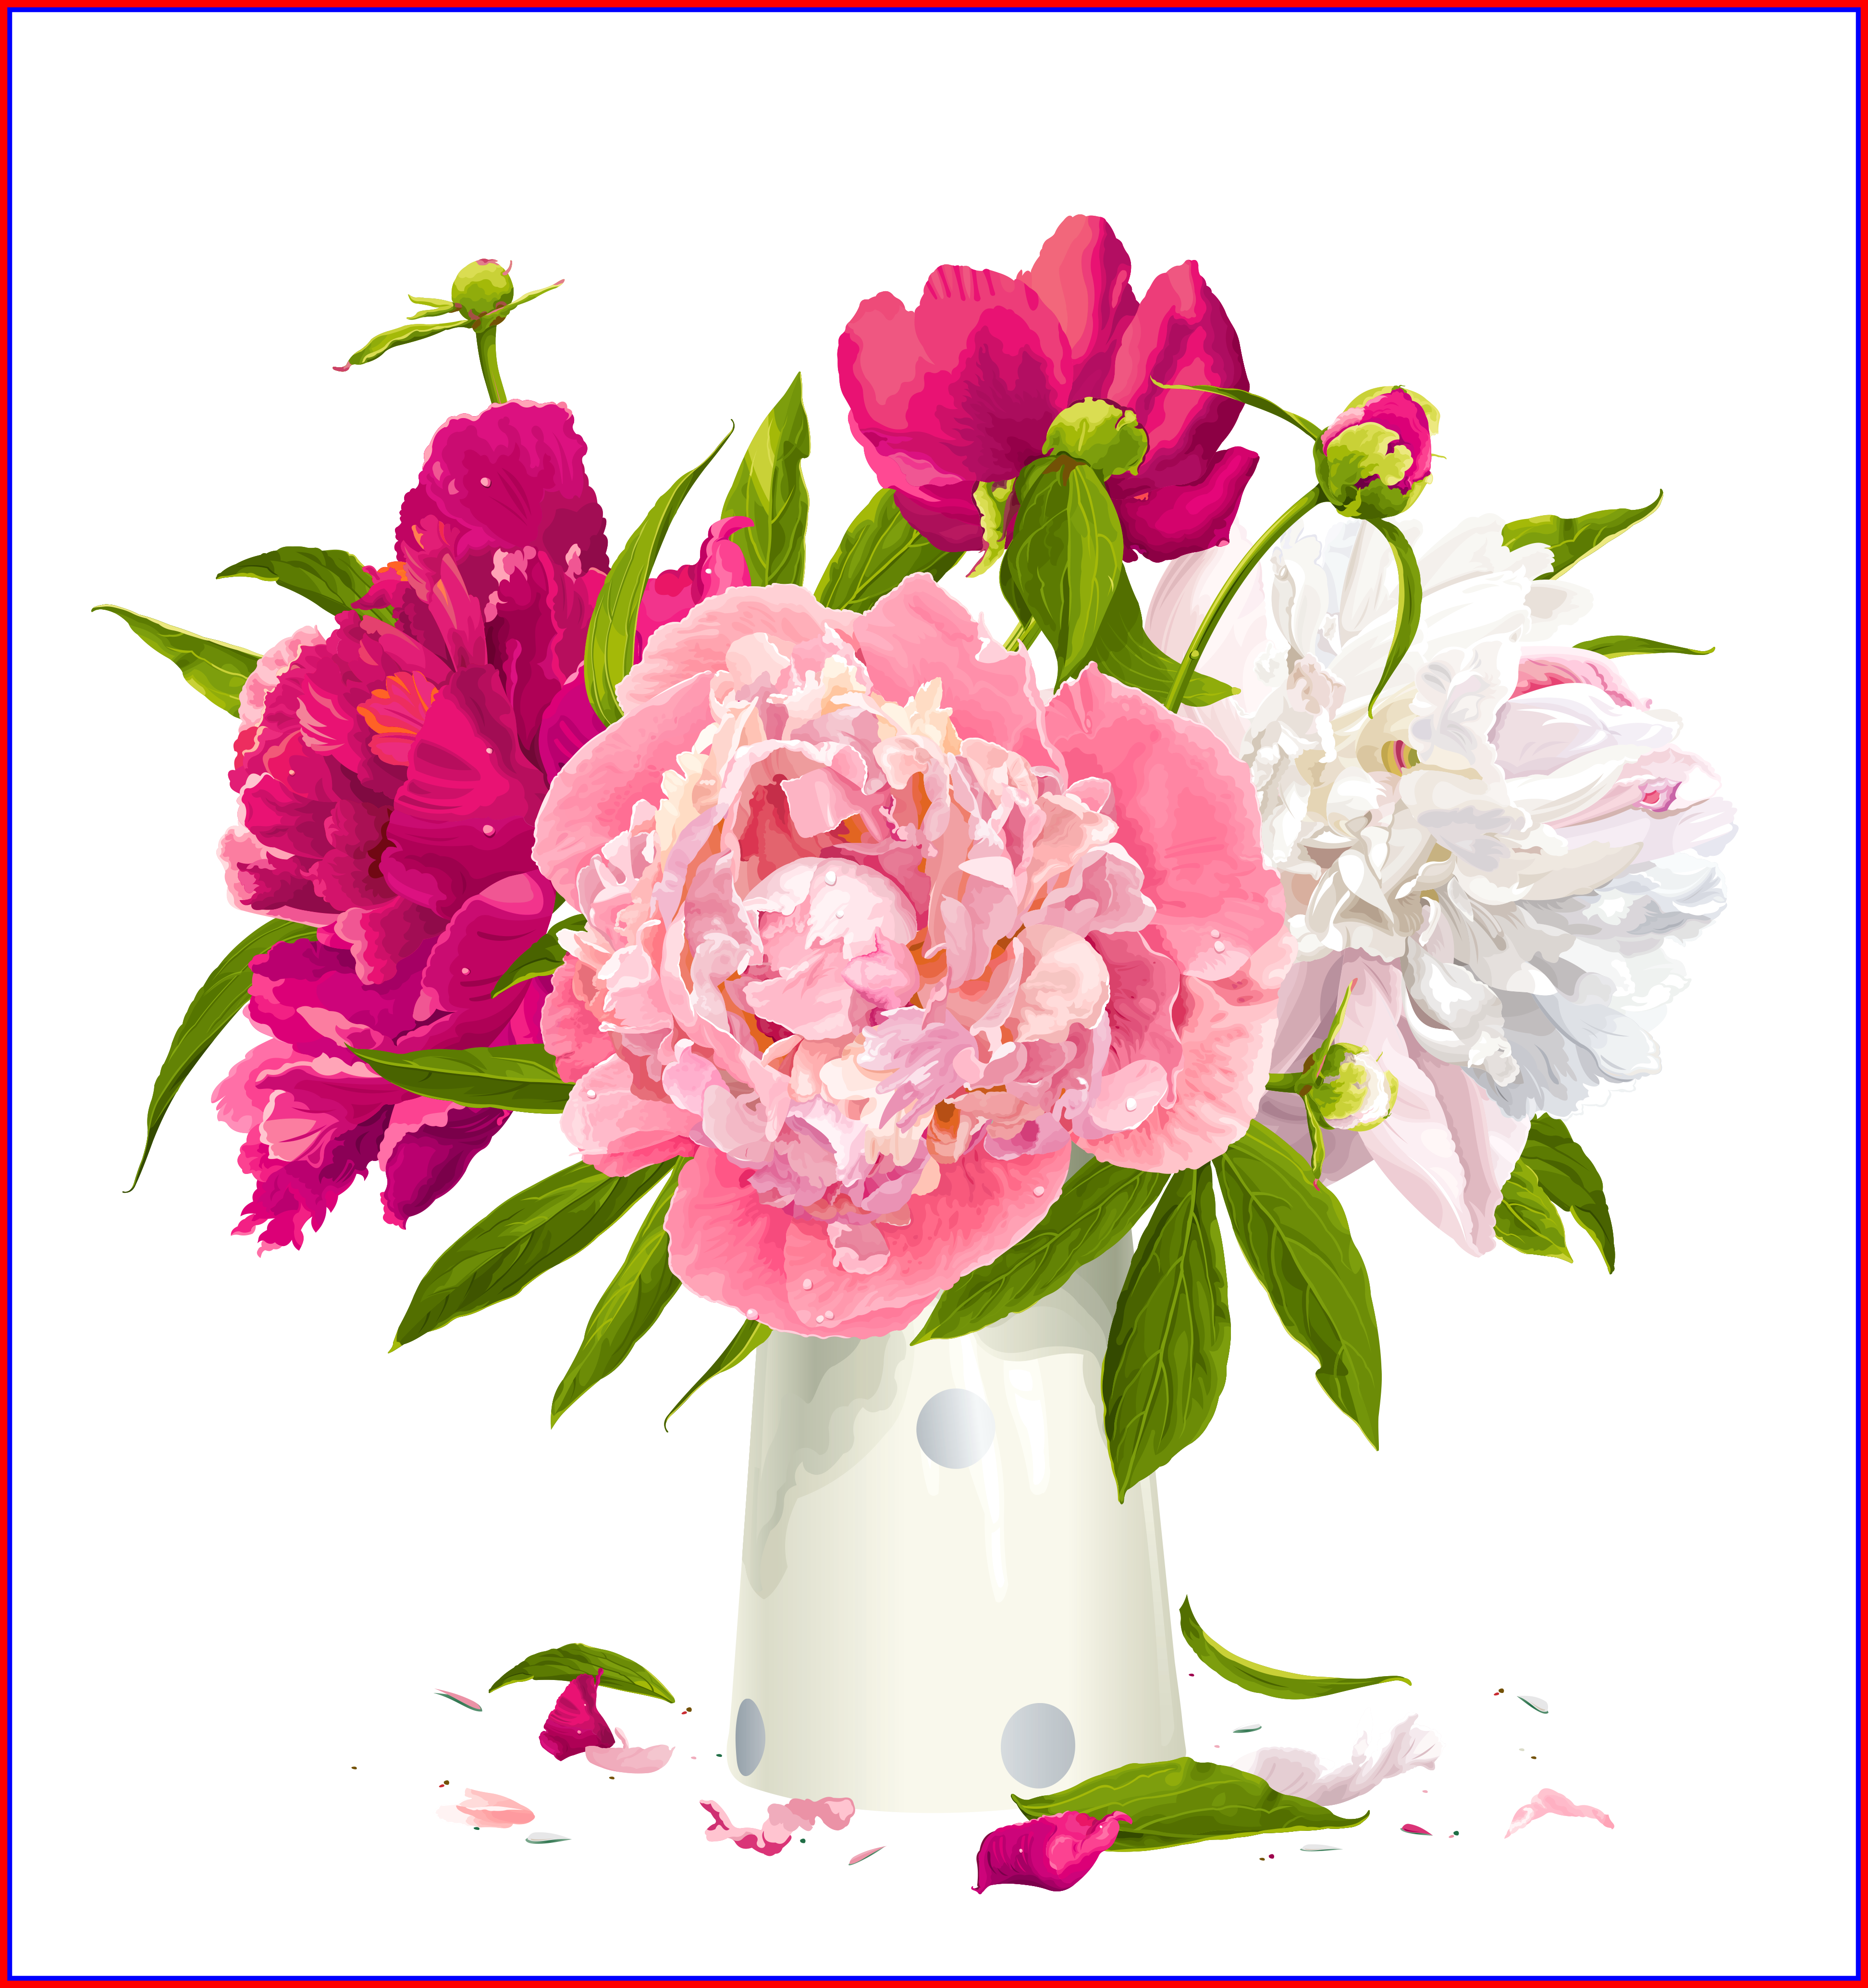 Hydrangea clipart high resolution. Shocking souvisejici obrazek rozdelovniky